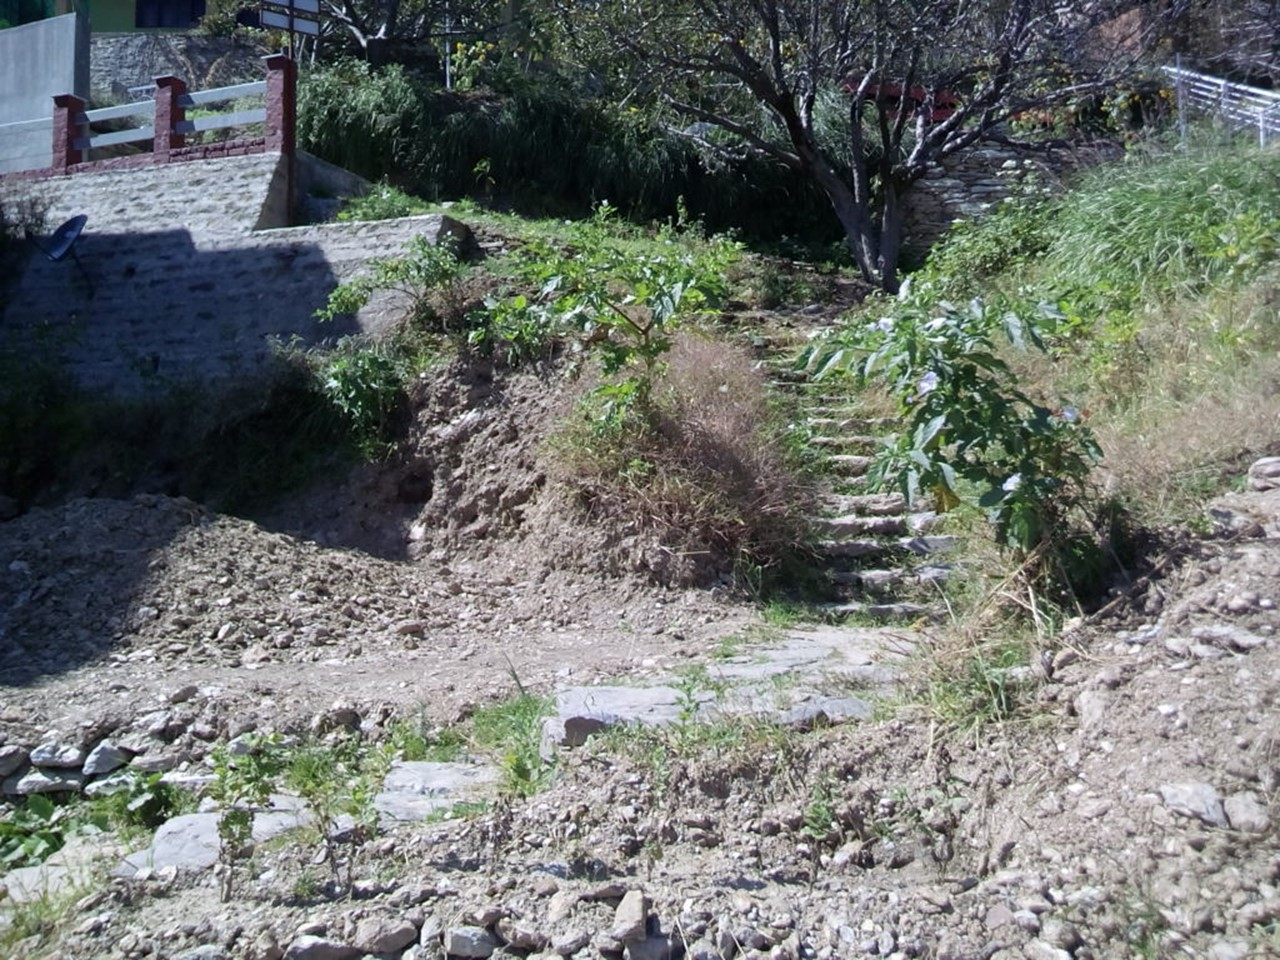 A rocky path consisting of mud, sand and stones